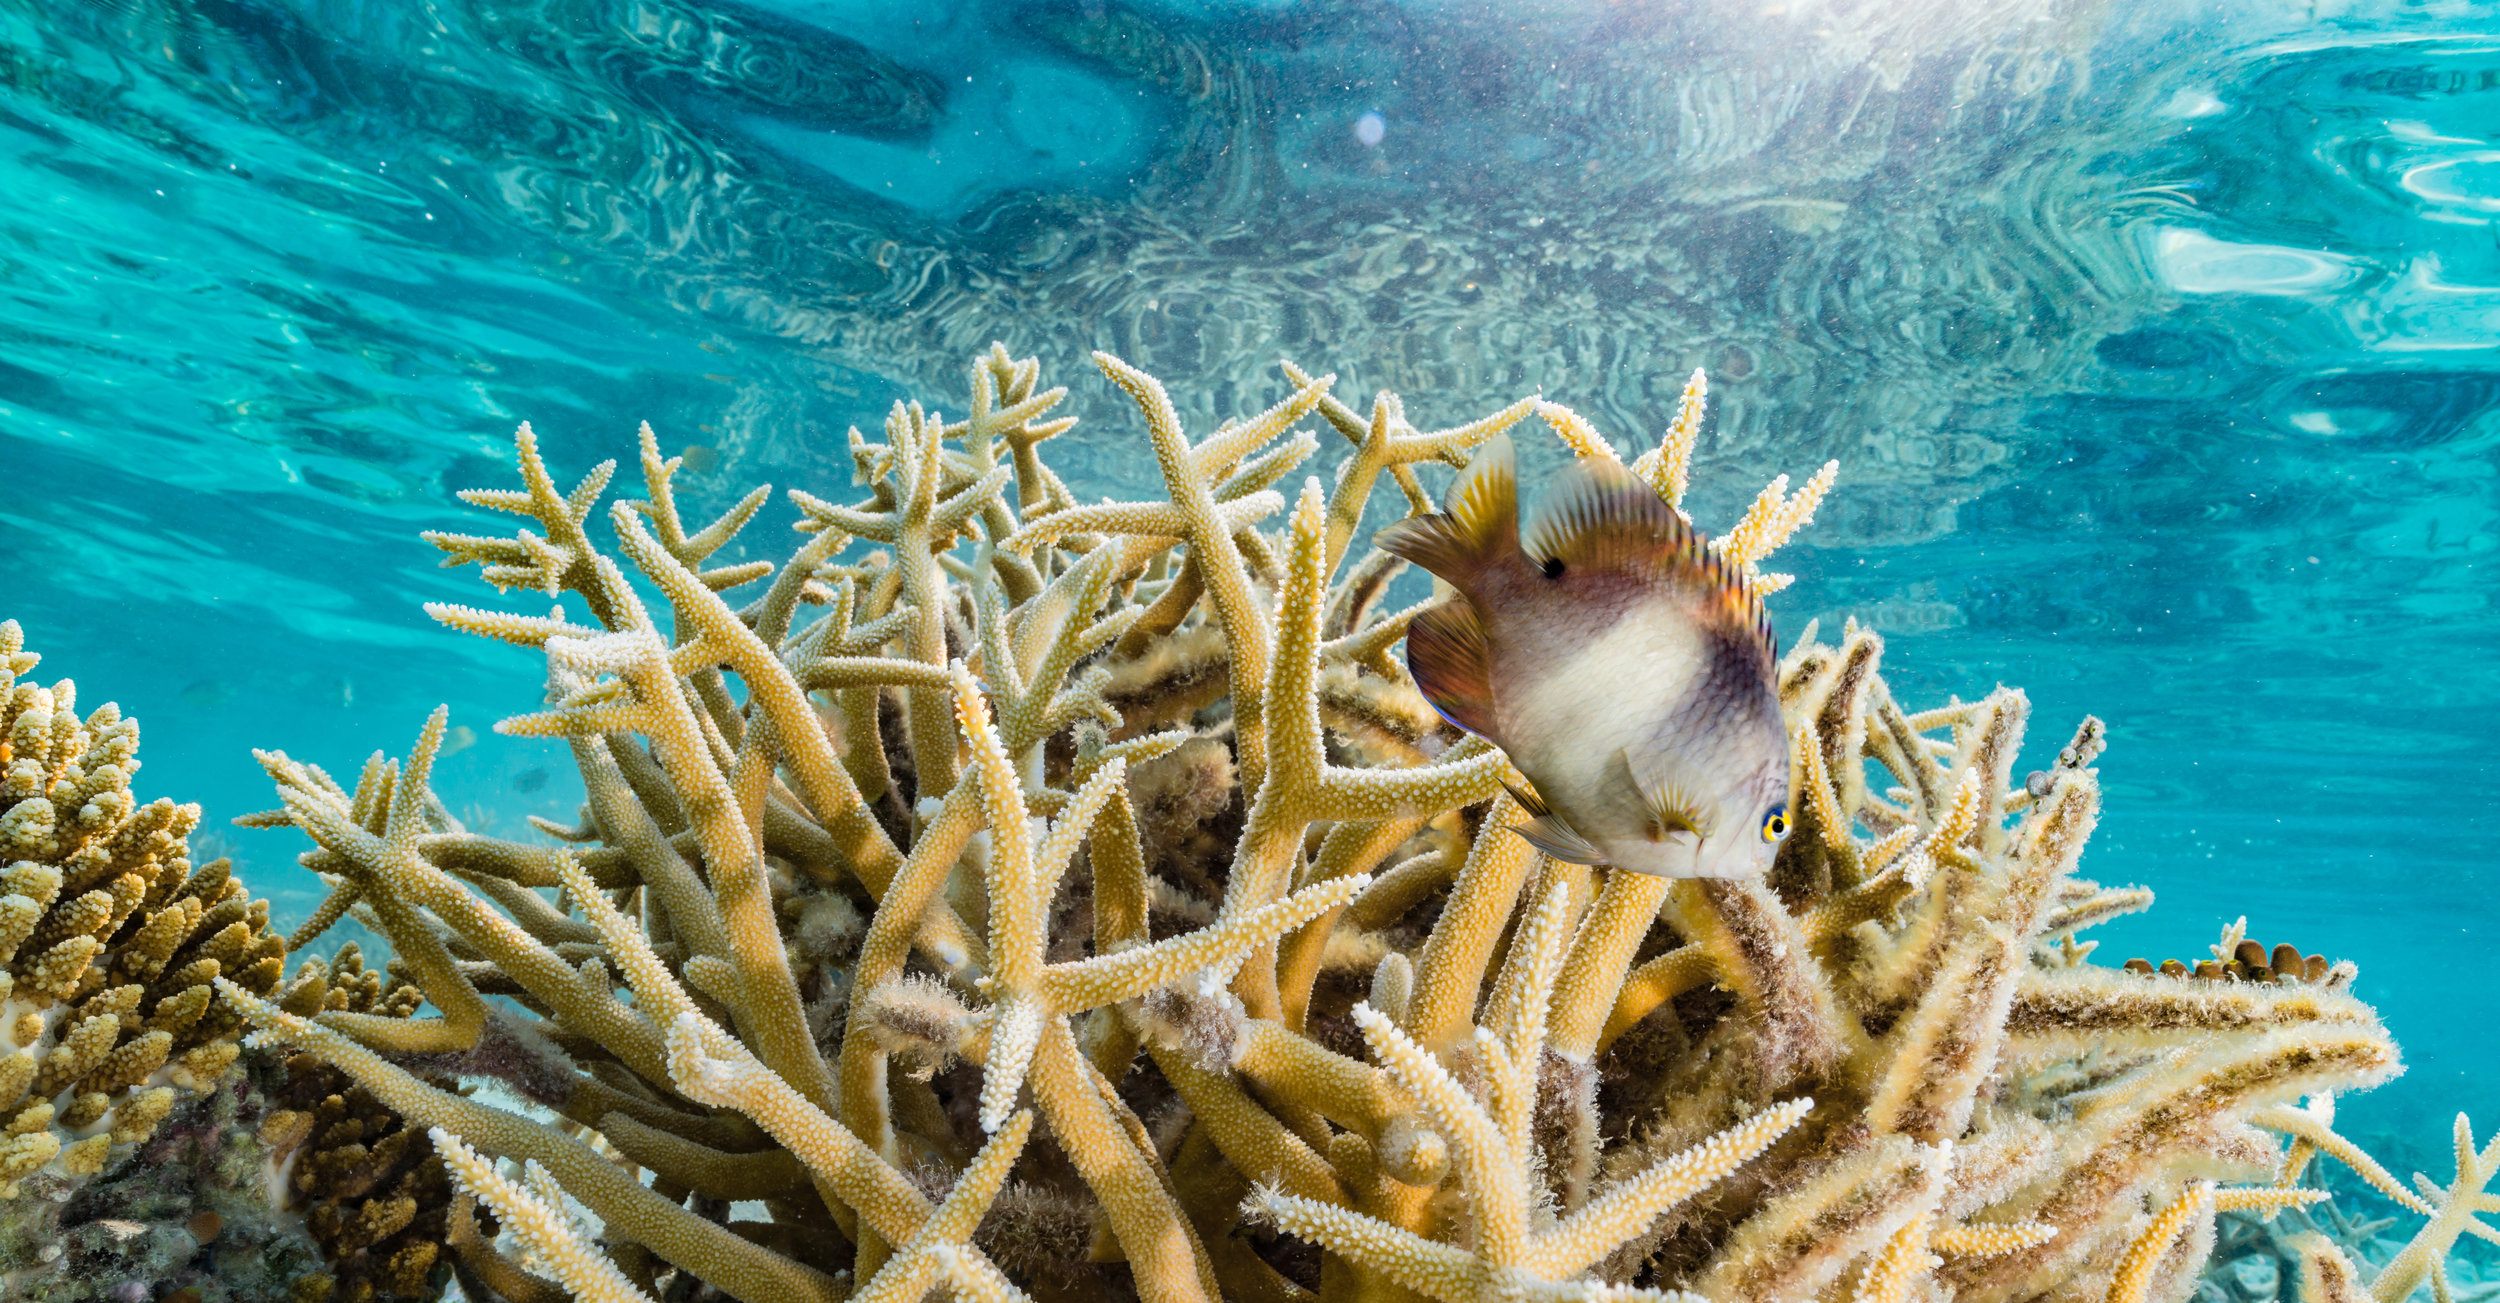 This reef fish makes its home on branching coral